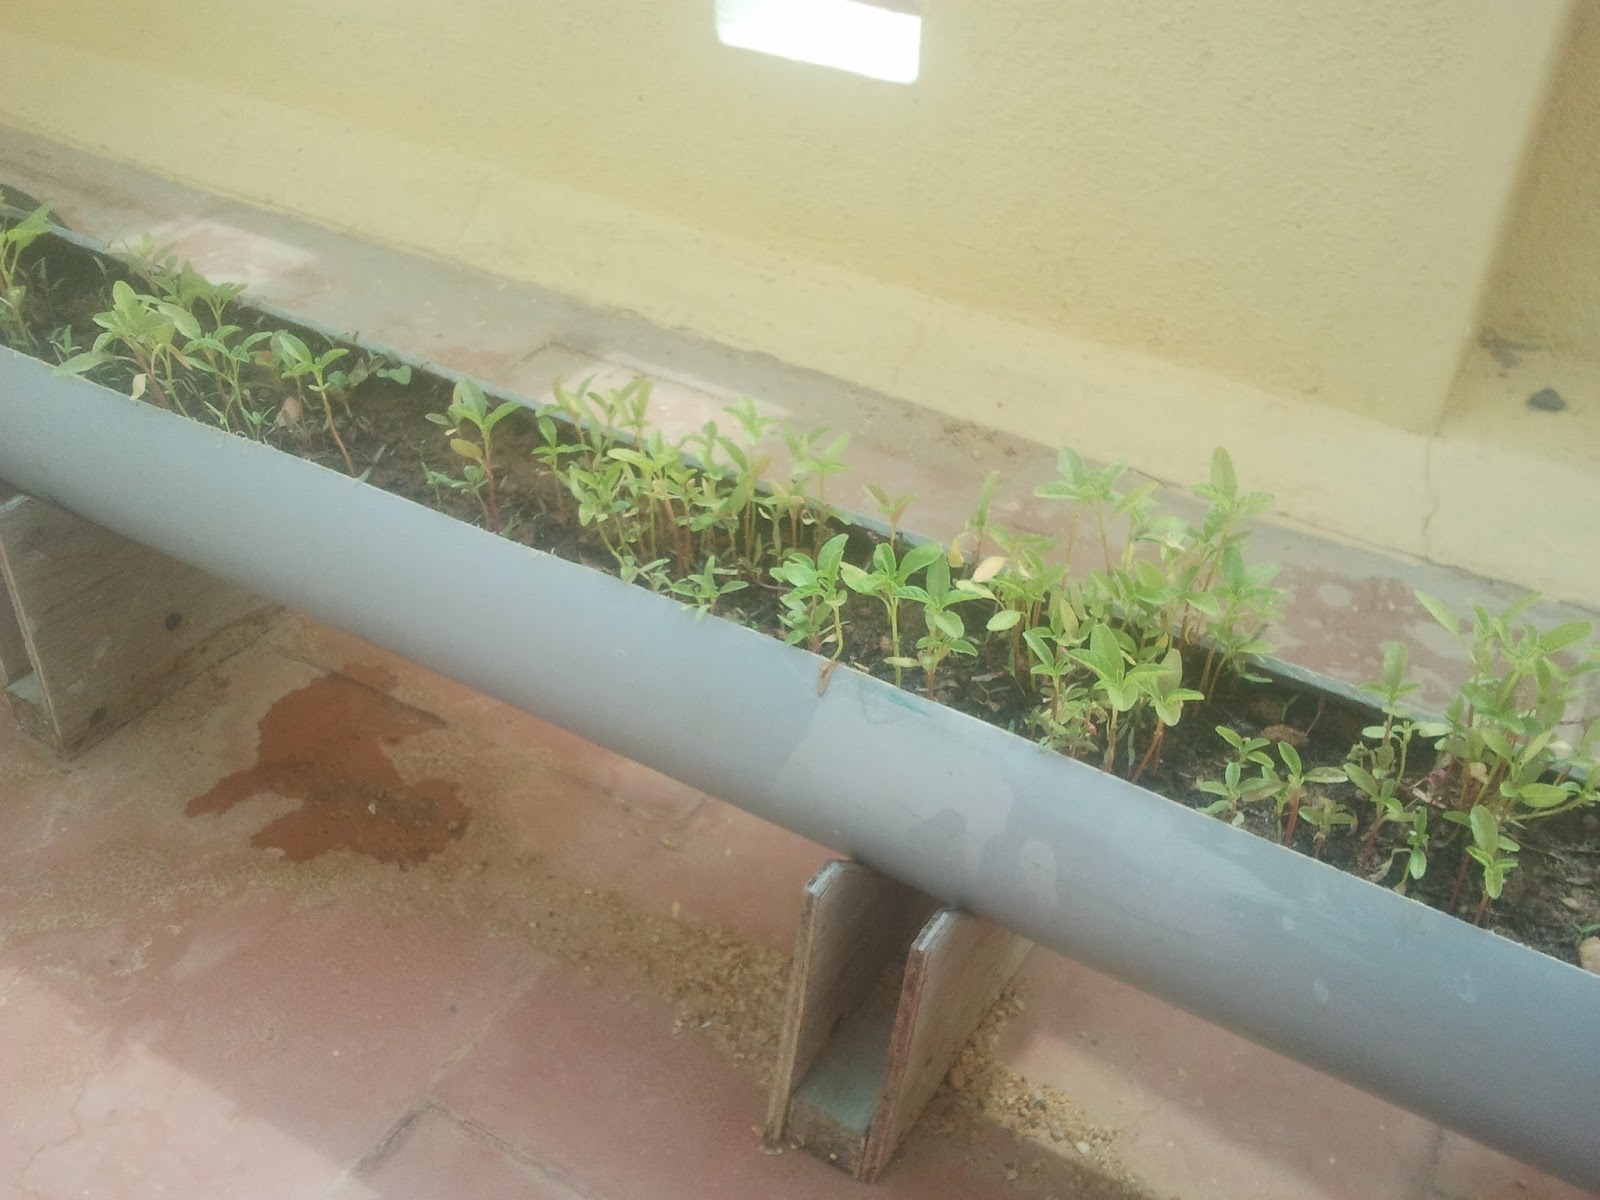 Http://ddeepakraja.blogspot.in/2013/05/diy Terrace Garden From Pvc Pipe.html